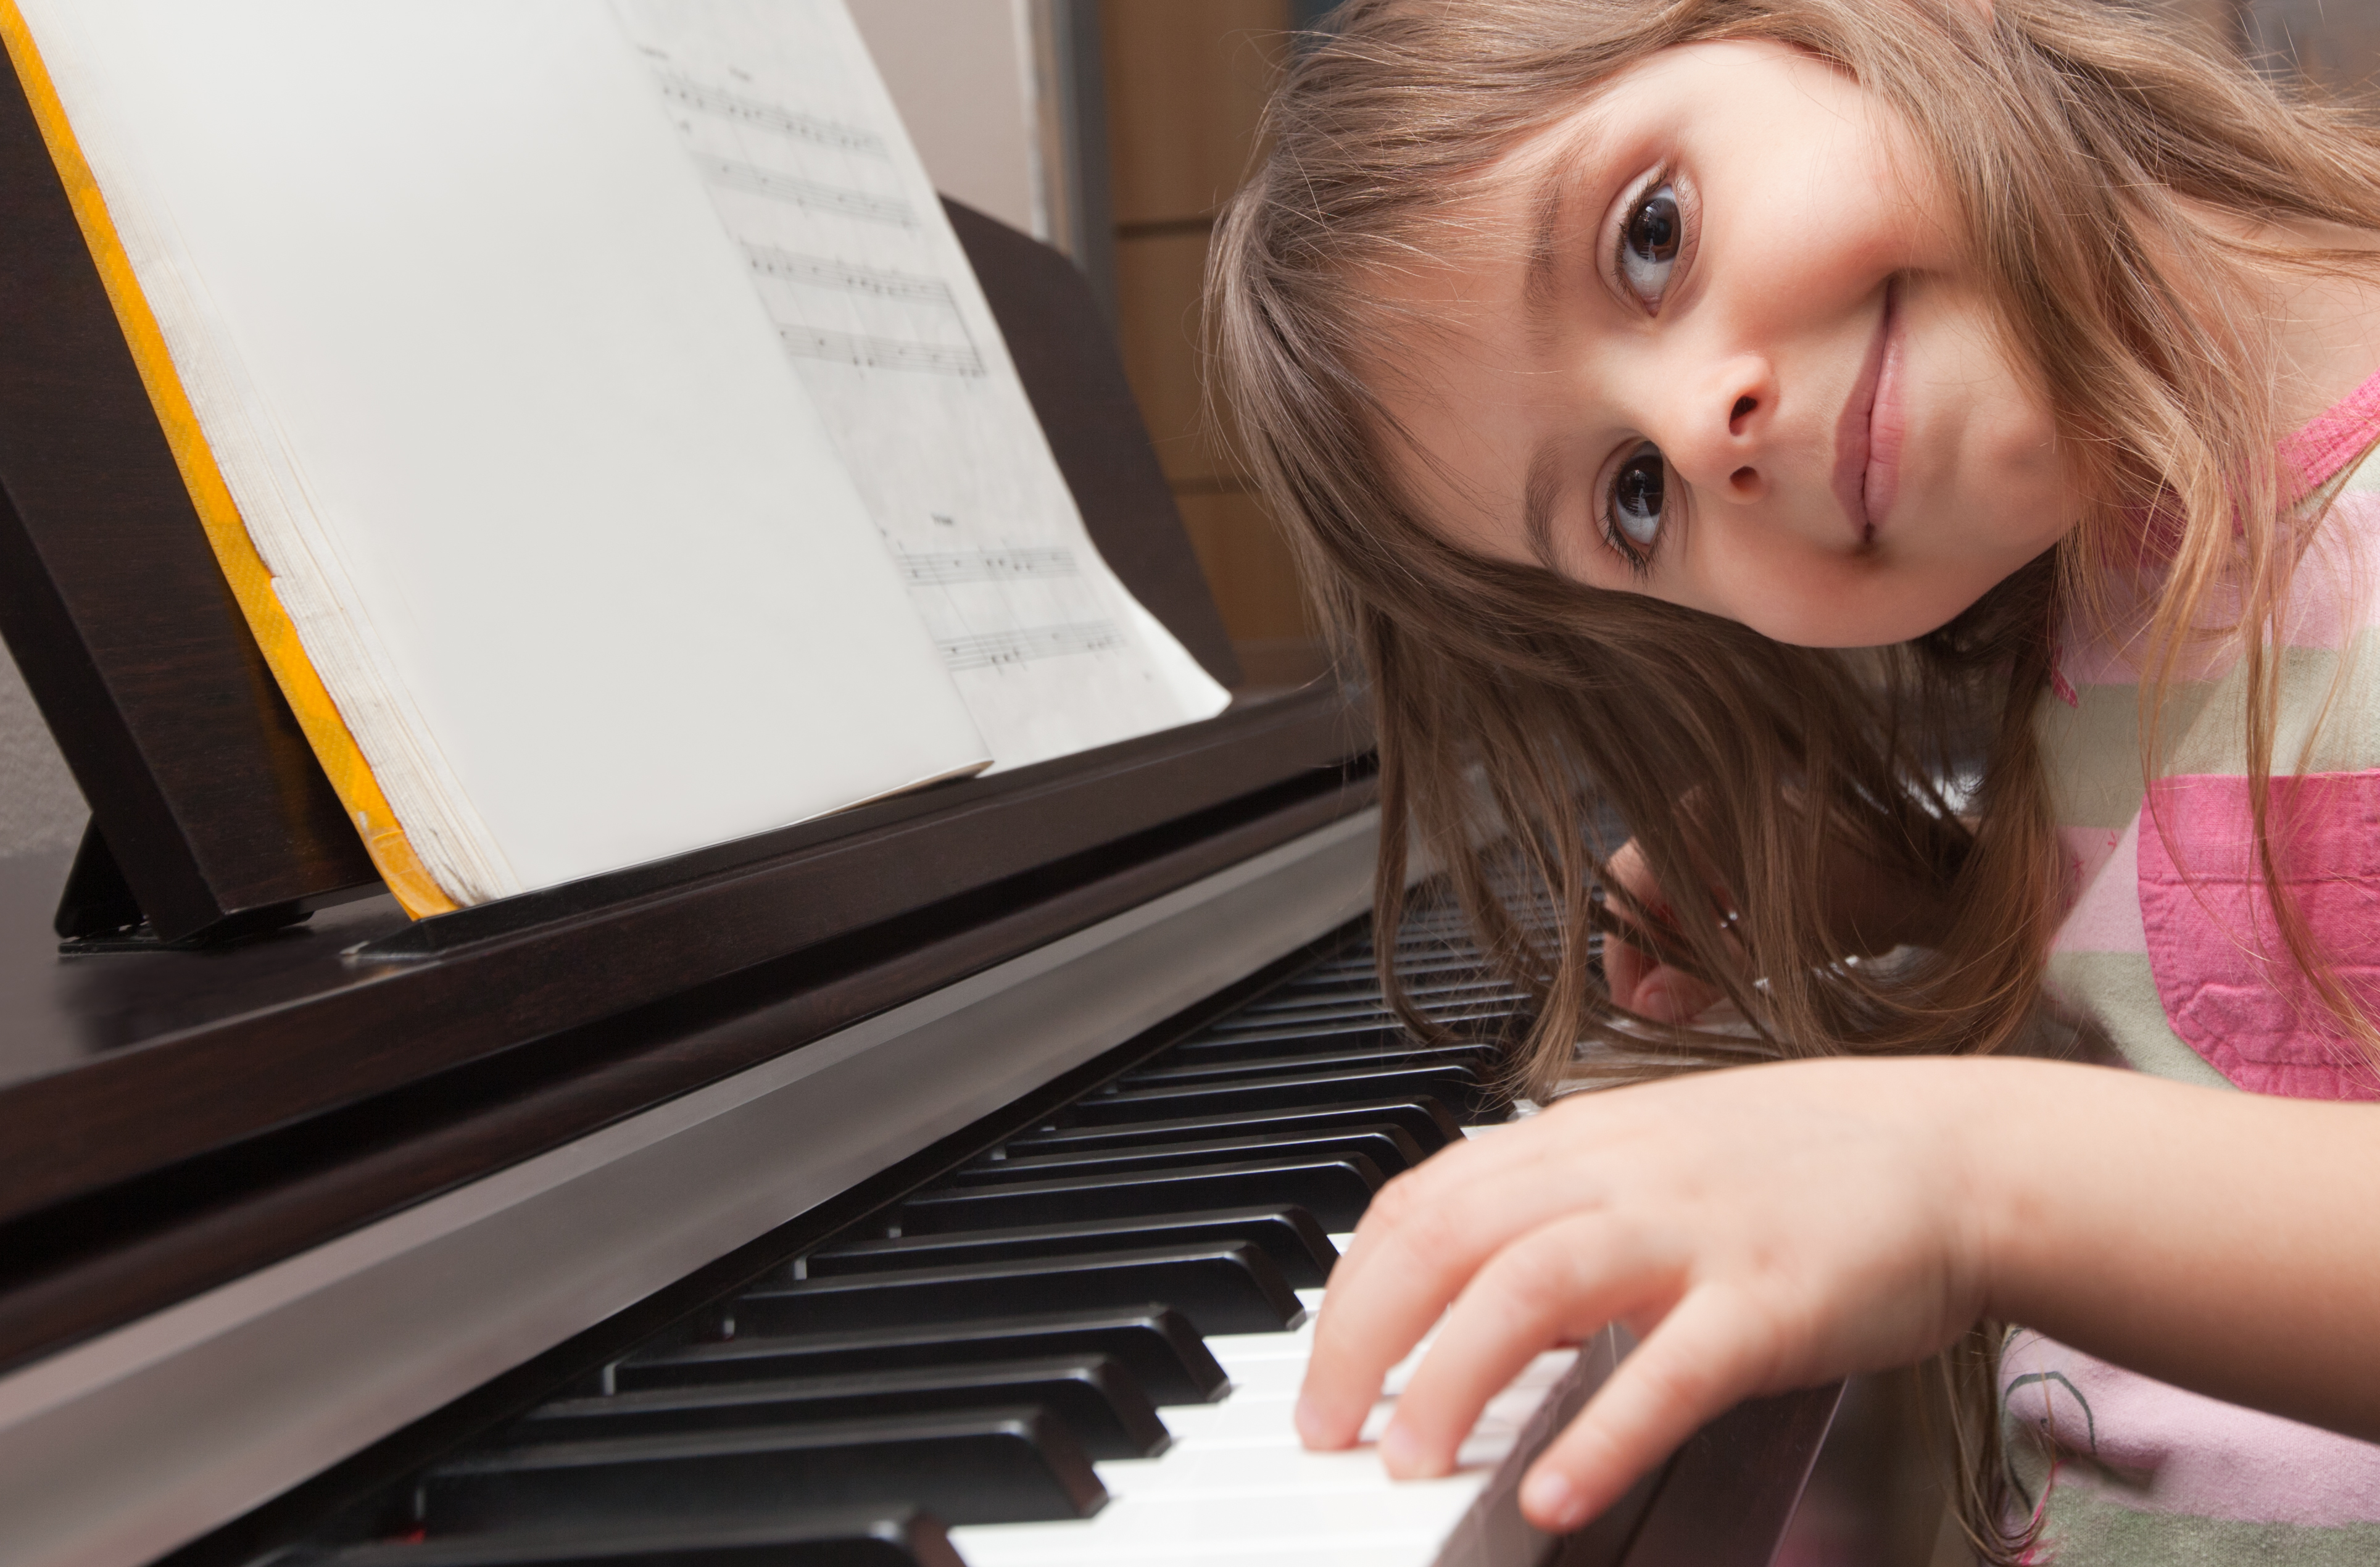 Little girl smiling at piano keyboard